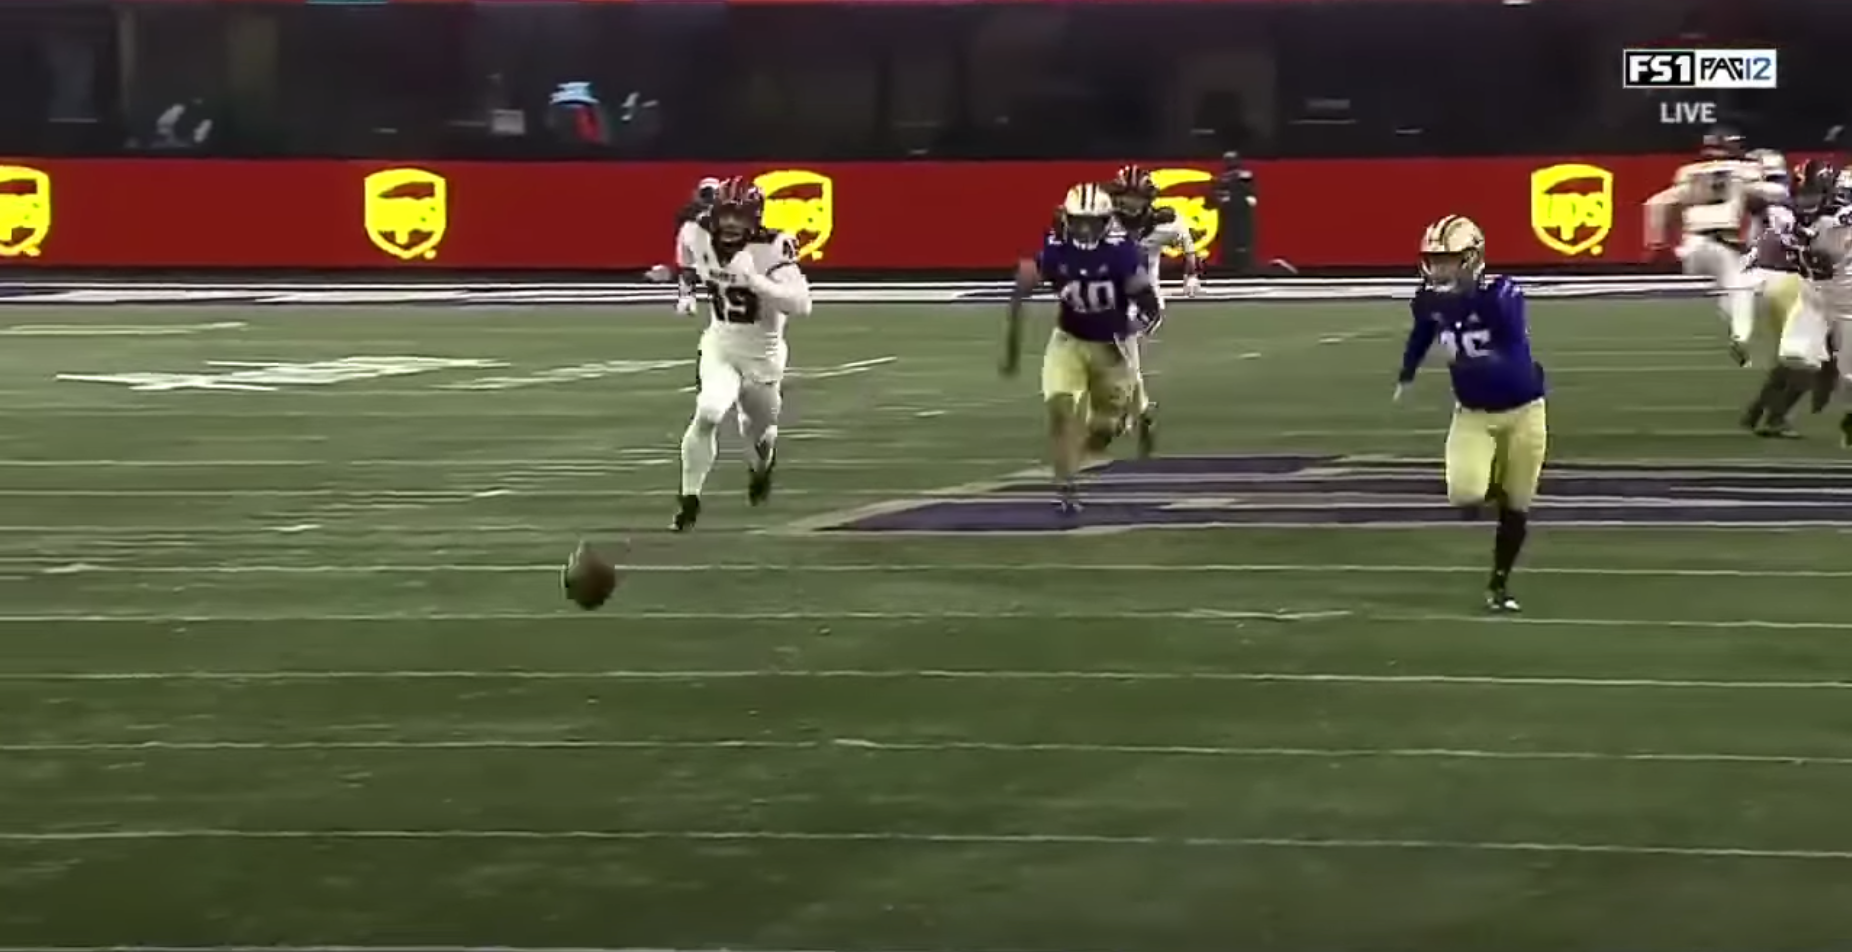 Chasing a football 20 yards is not ordinarily what a punter does on a punt play.